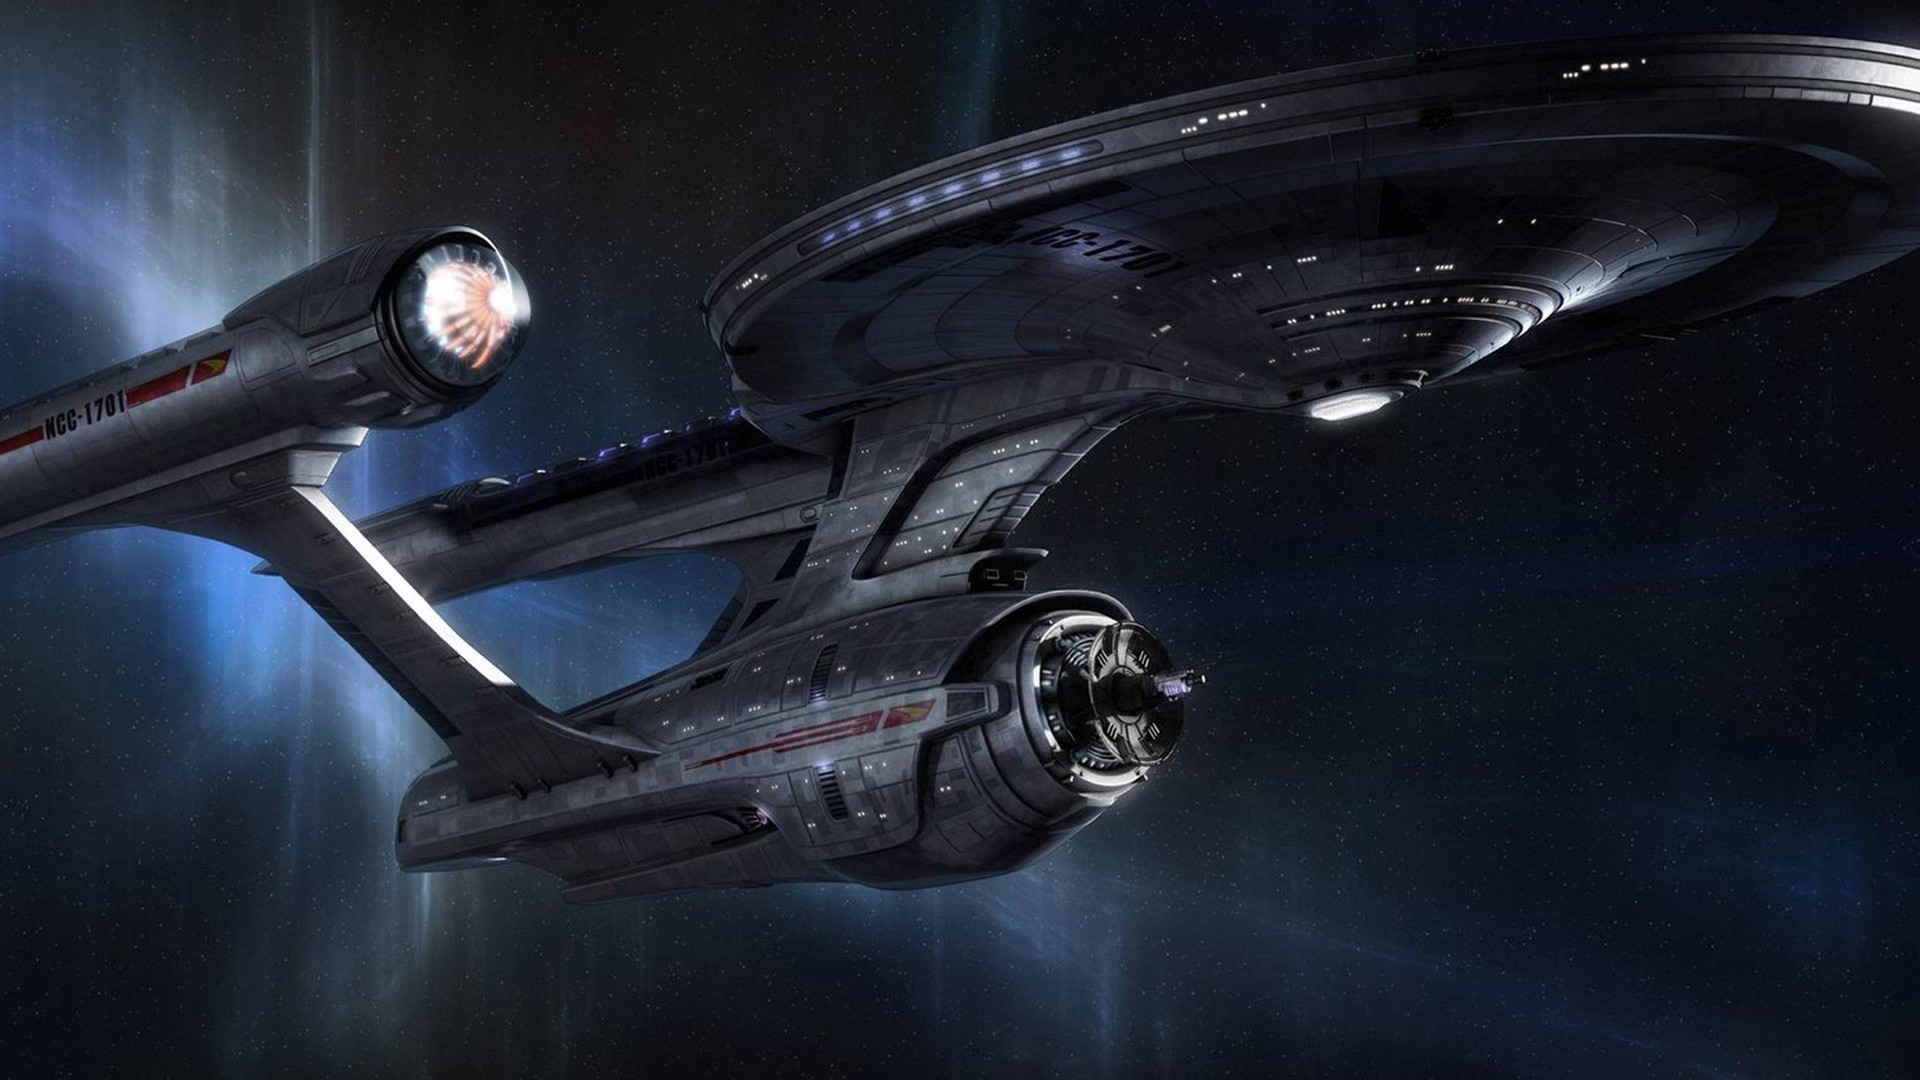 classic enterprise star trek outer space spaceships 1920x1080 wallpaper